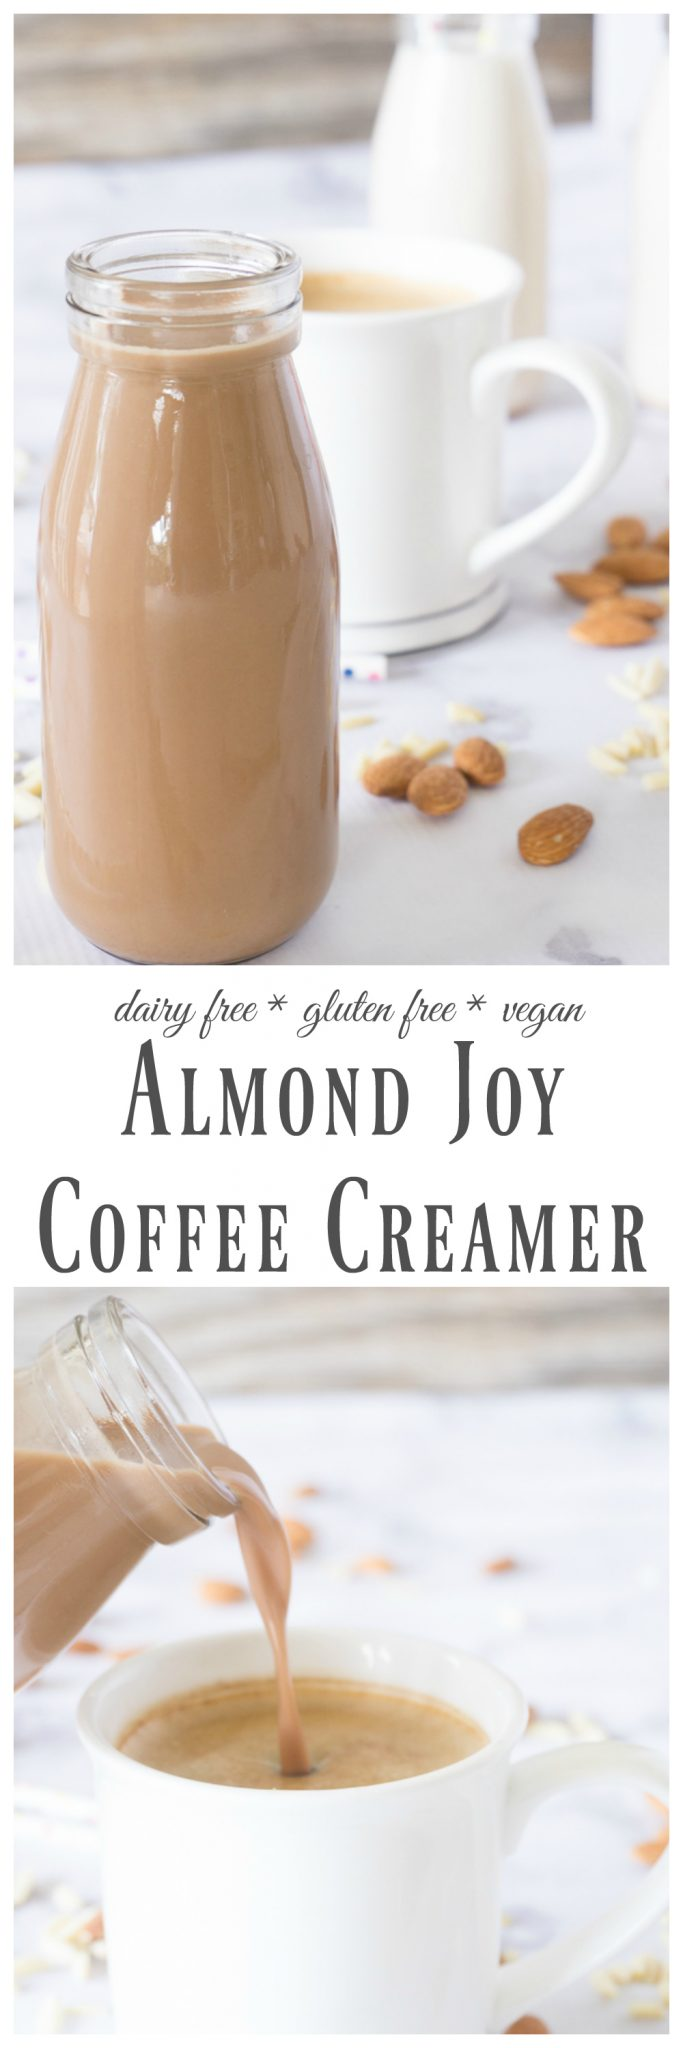 Splurge a little with this thick and creamy dairy free Almond Joy Coffee Creamer.  It's made completely from scratch and just a few basic ingredients like almonds, cocoa powder, sugar, and extracts.